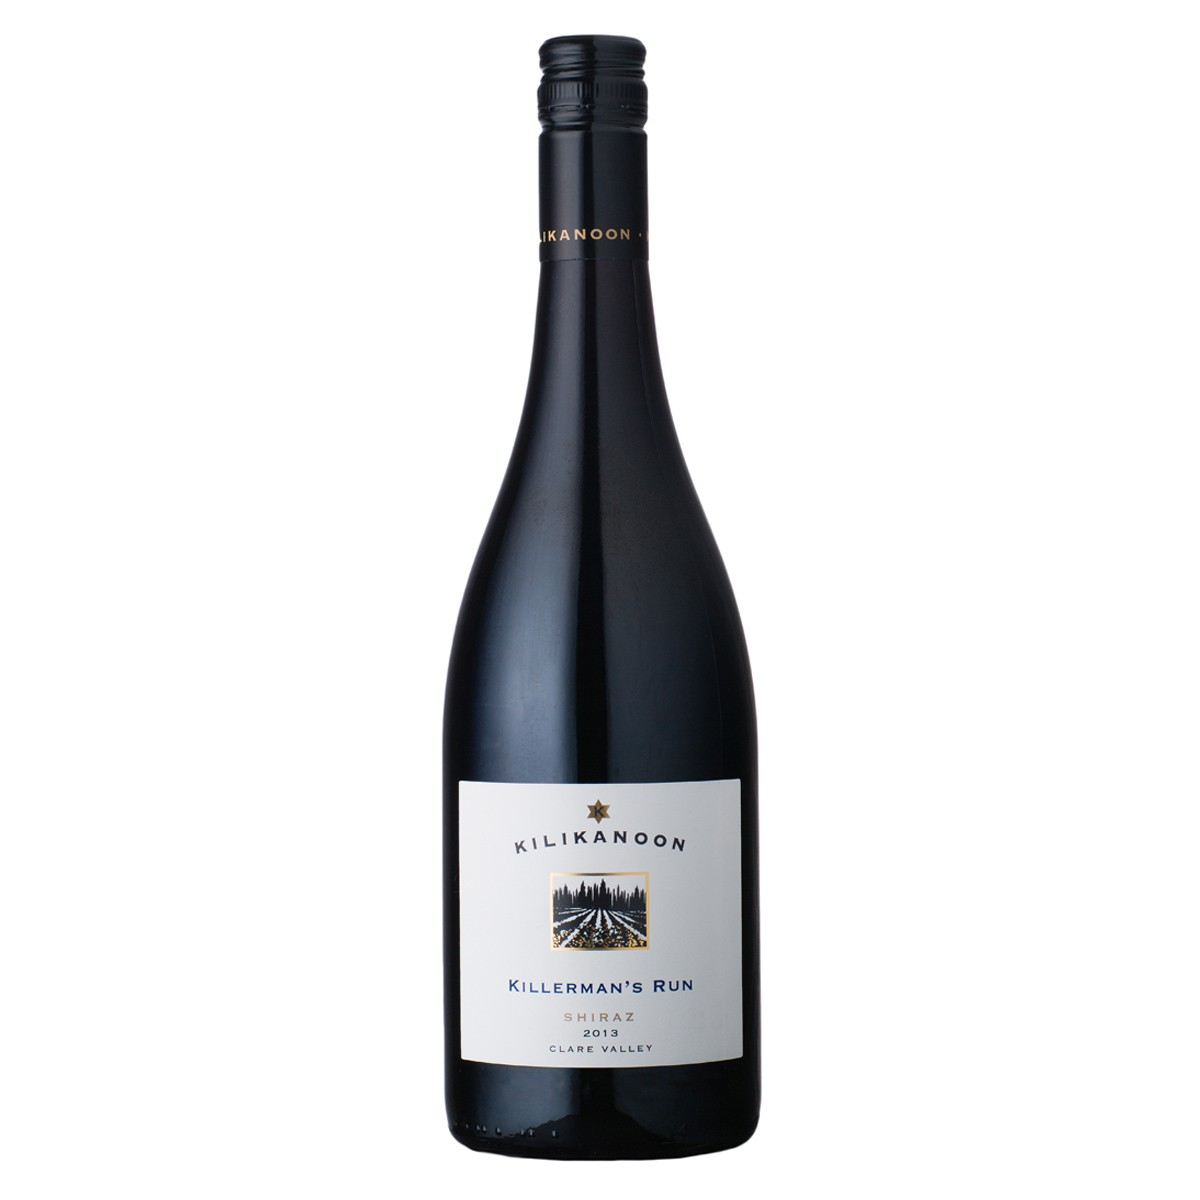 Killerman'S Run Shiraz